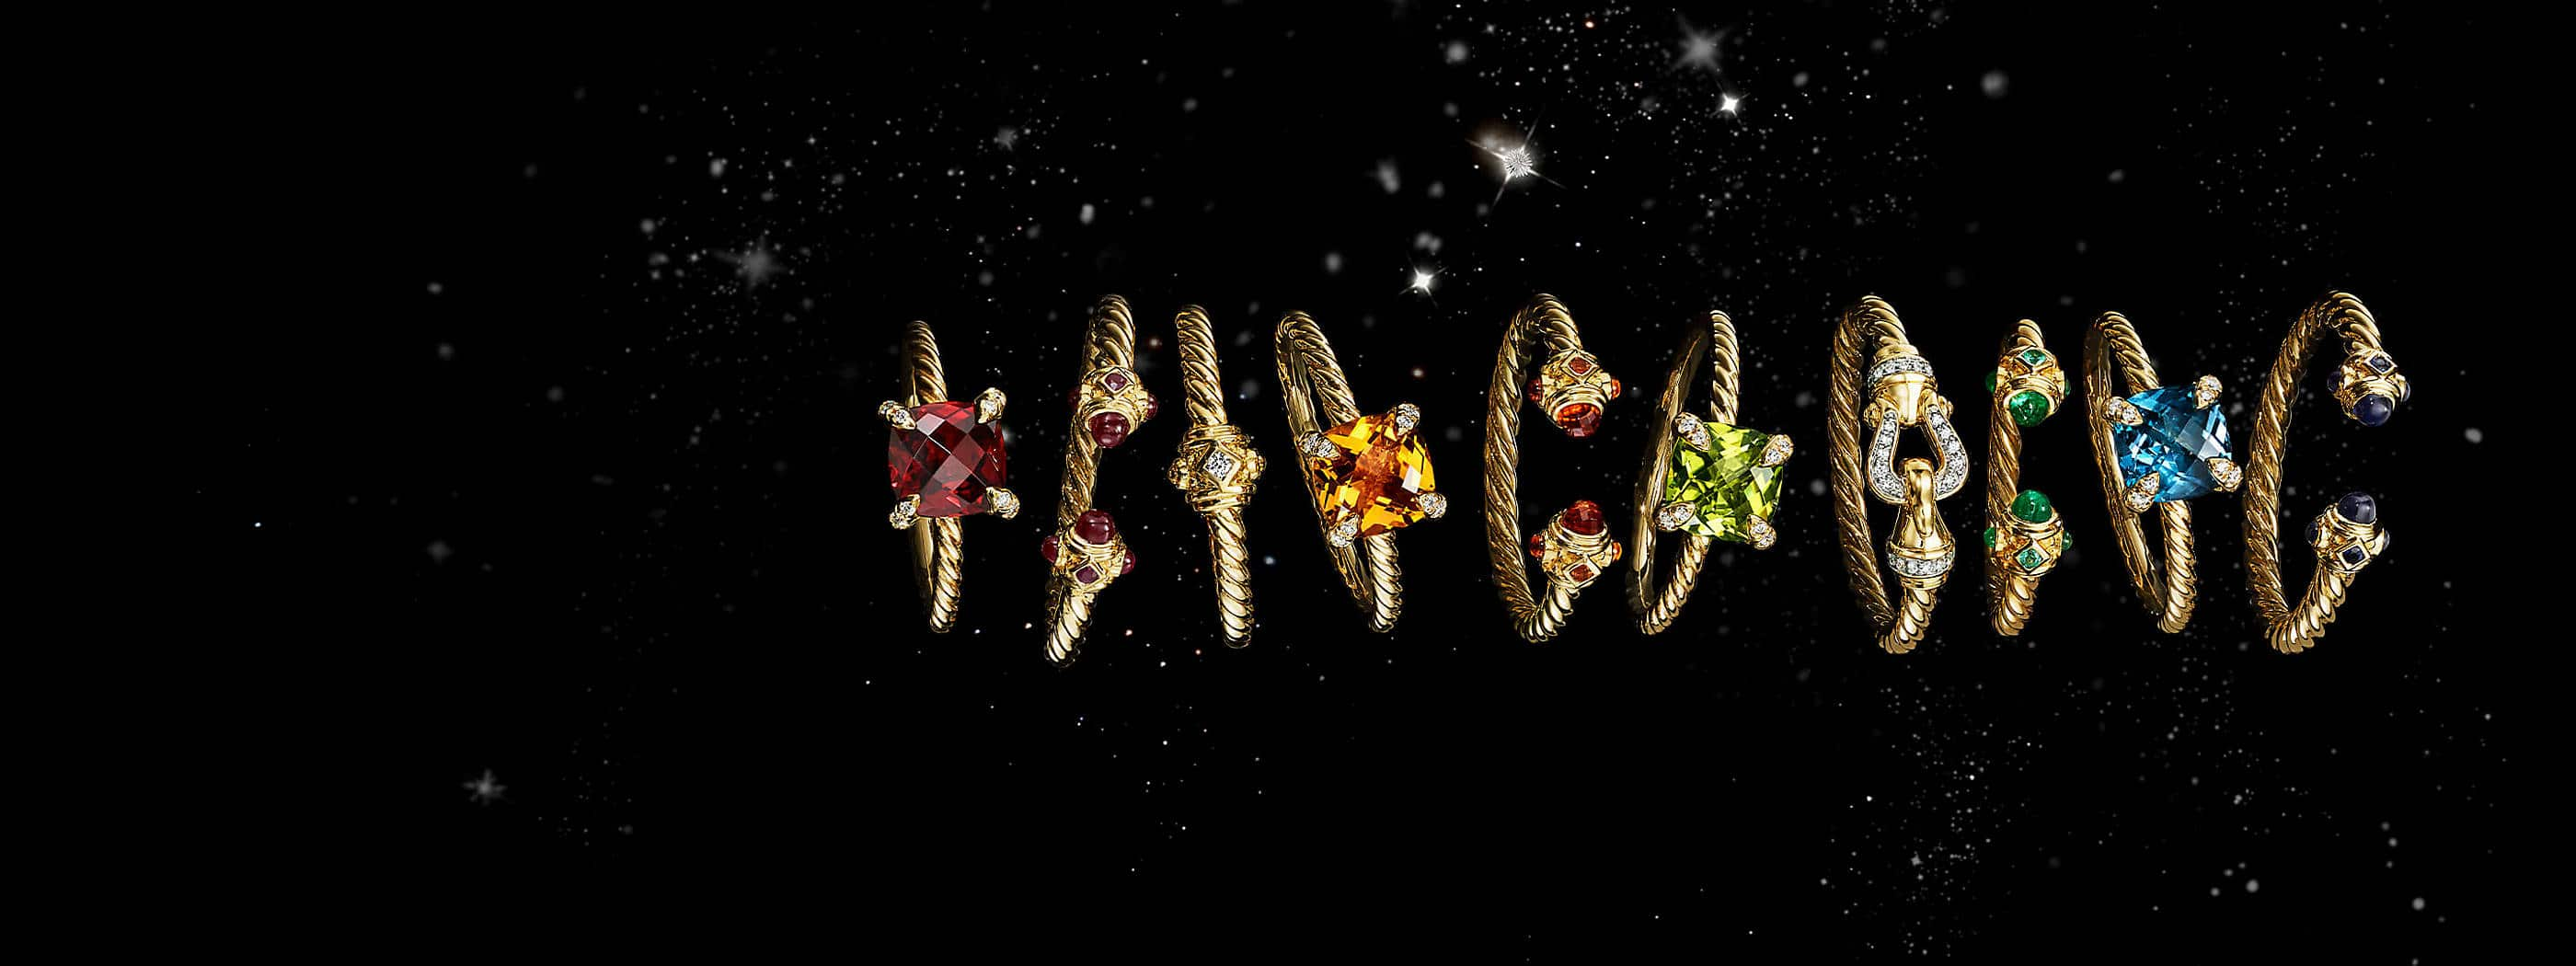 A color photo shows a horizontal row of ten David Yurman women's rings from the Renaissance, Châtelaine, Buckle and Venetian Quatrefoil collections floating in front of a starry night sky. The jewelry is crafted from 18K yellow gold with or without pavé diamonds and colored gemstones.